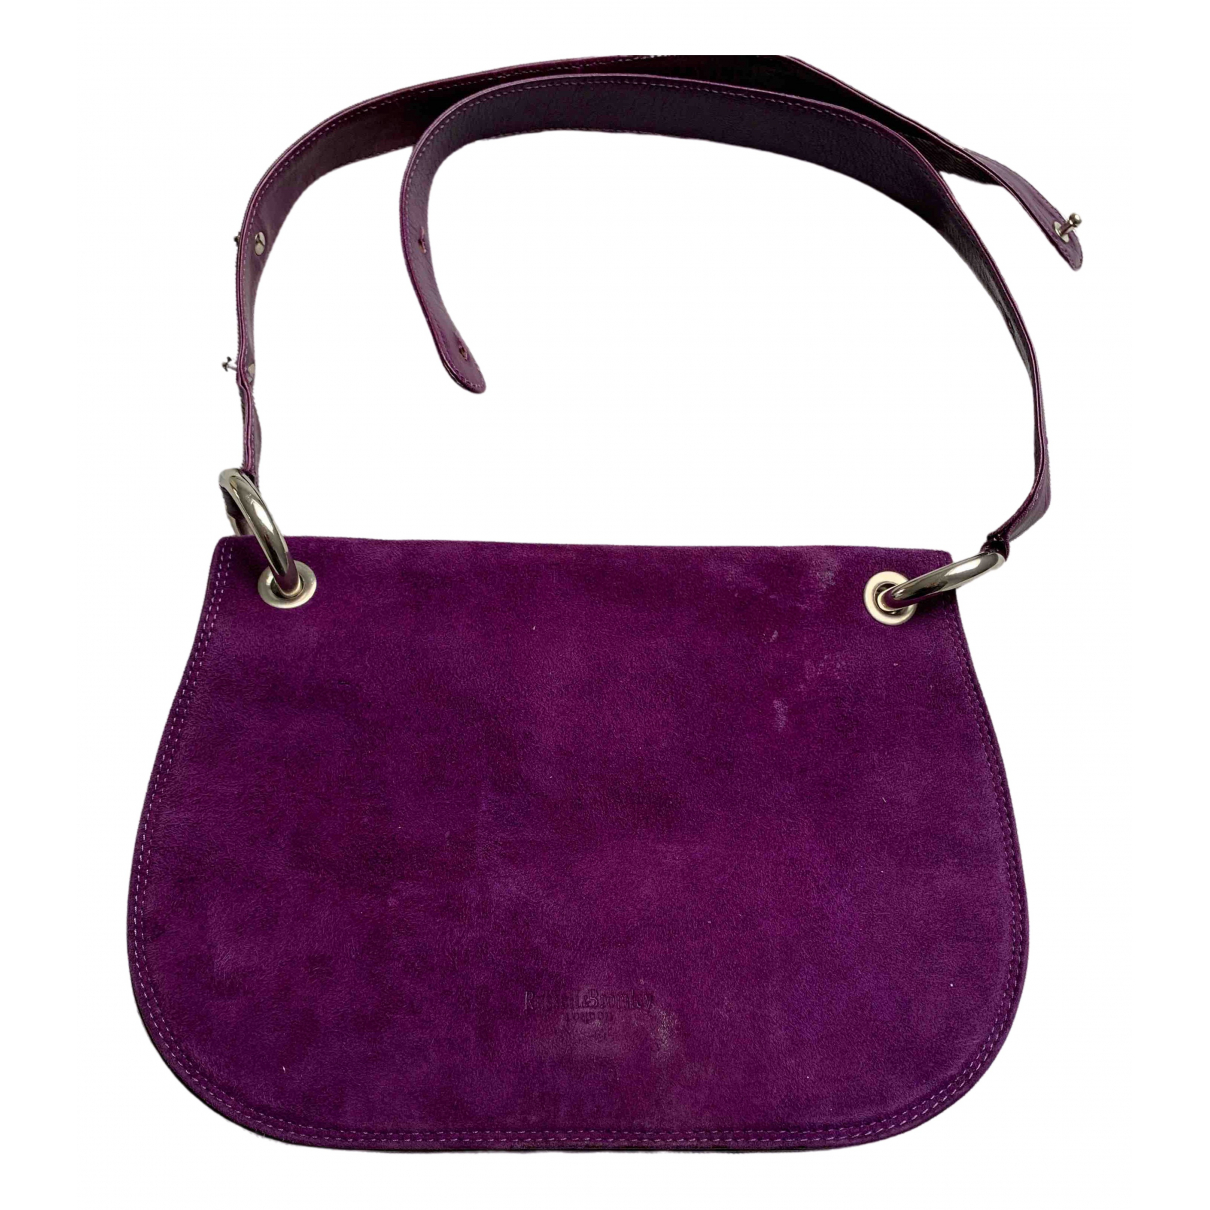 Russell & Bromley \N Handtasche in  Lila Leder